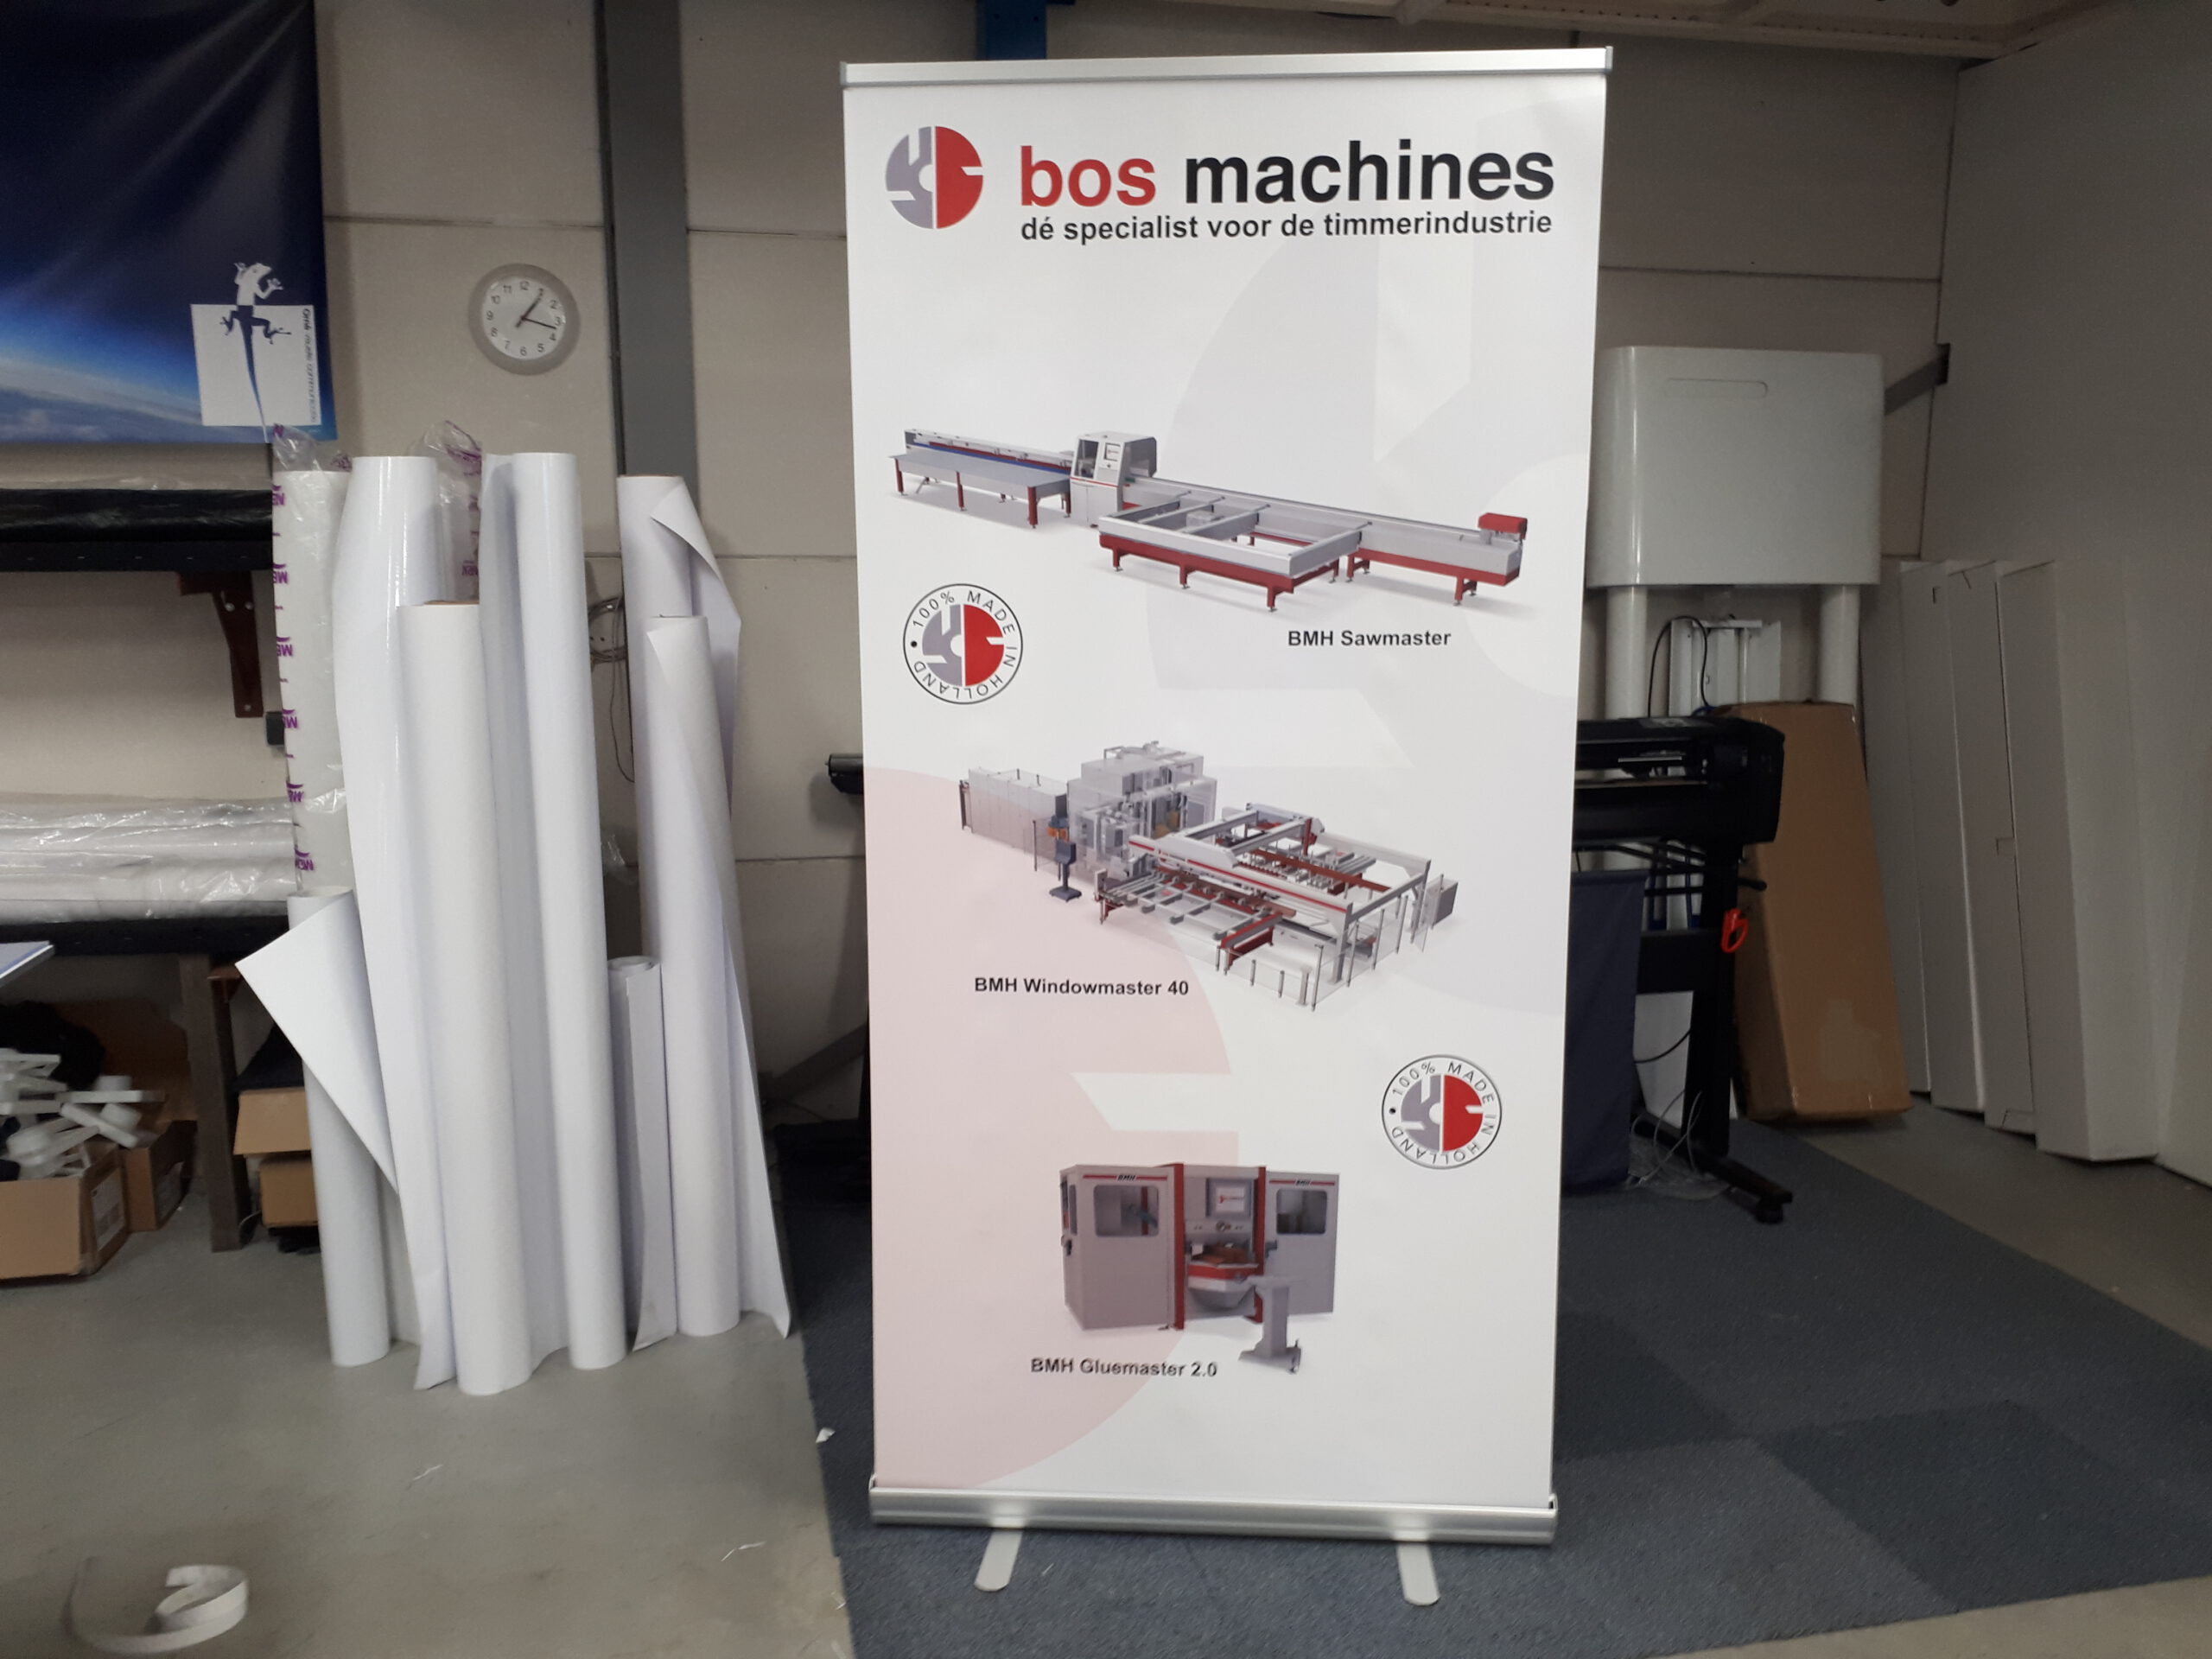 Roll-up banner Bos Machines